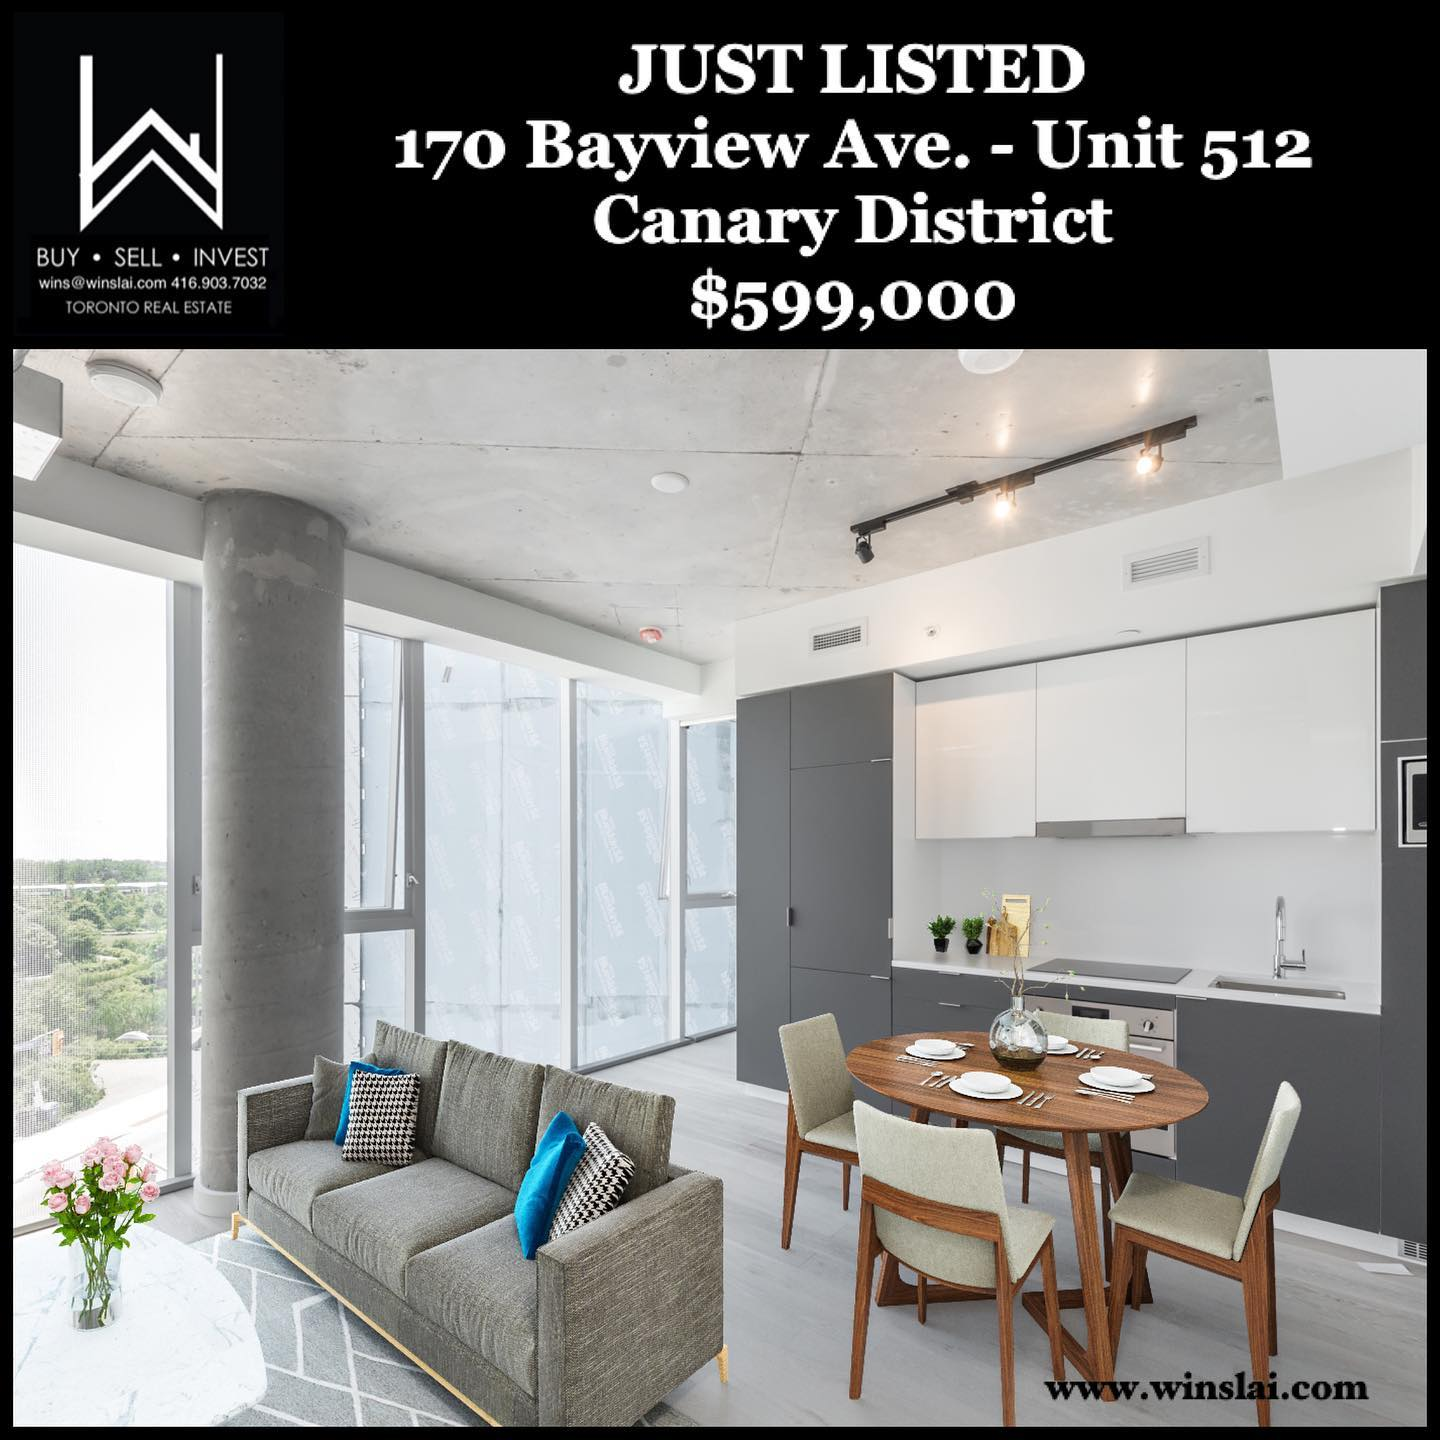 Just Listed flyer for condo.